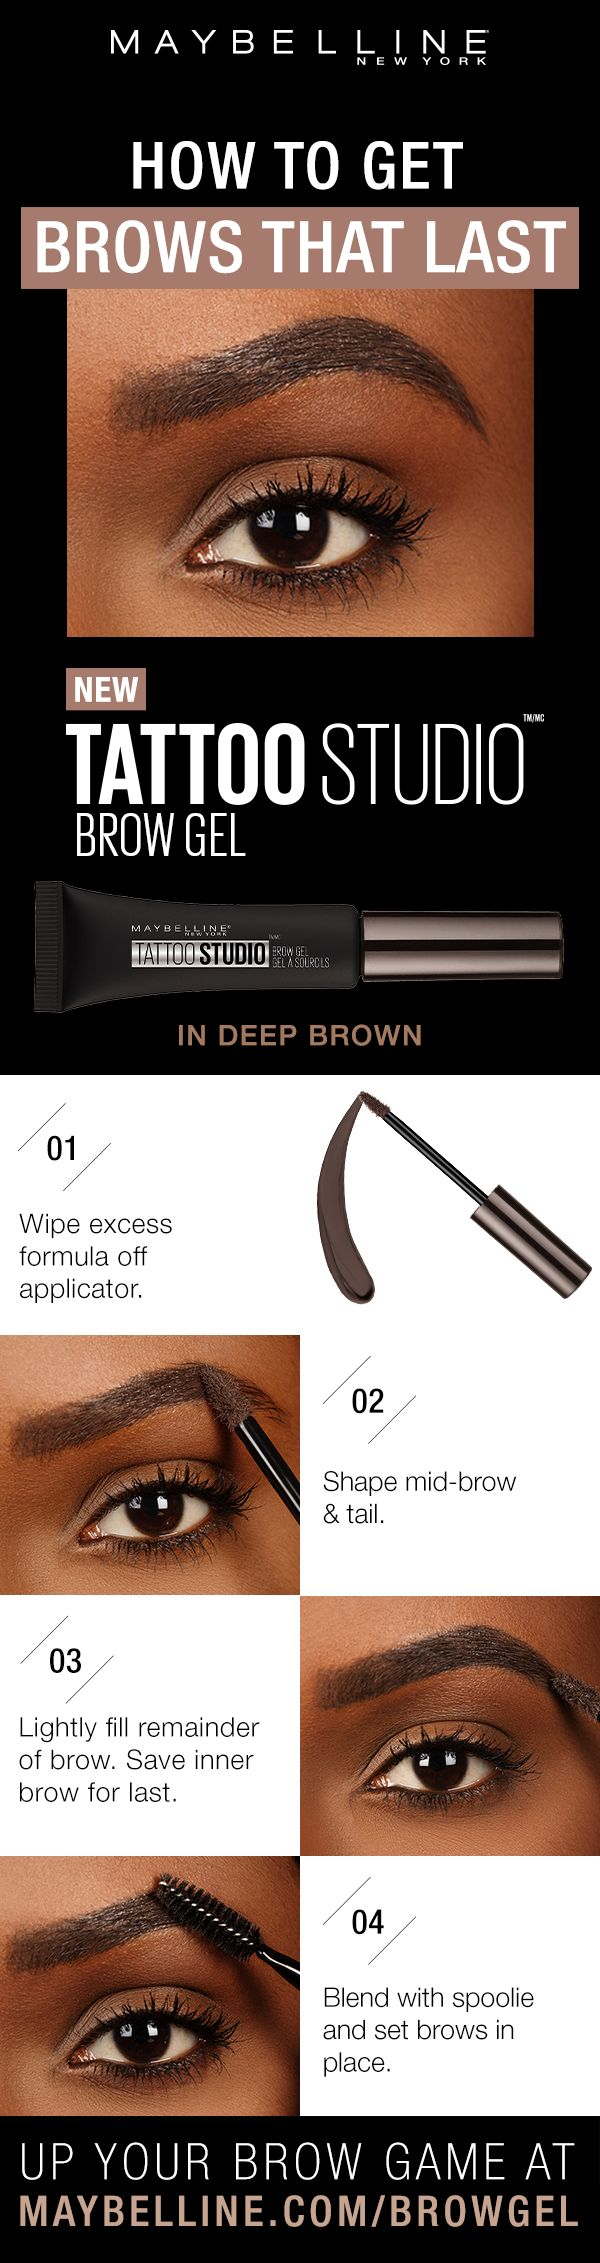 Tattoo Studio Waterproof Eyebrow Gel creates fuller-looking definition that last for days. Fill and color your eyebrows with this ultra-resistant and waterproof eyebrow gel. The sculpting tip and eyebrow spoolie brush work together to create fuller-looking eyebrows that last for days. Wipe off the excess from the applicator. Then shape brow and fill. Lightly fill and use the remainder on the front of the brow. Blend with spoolie to set.